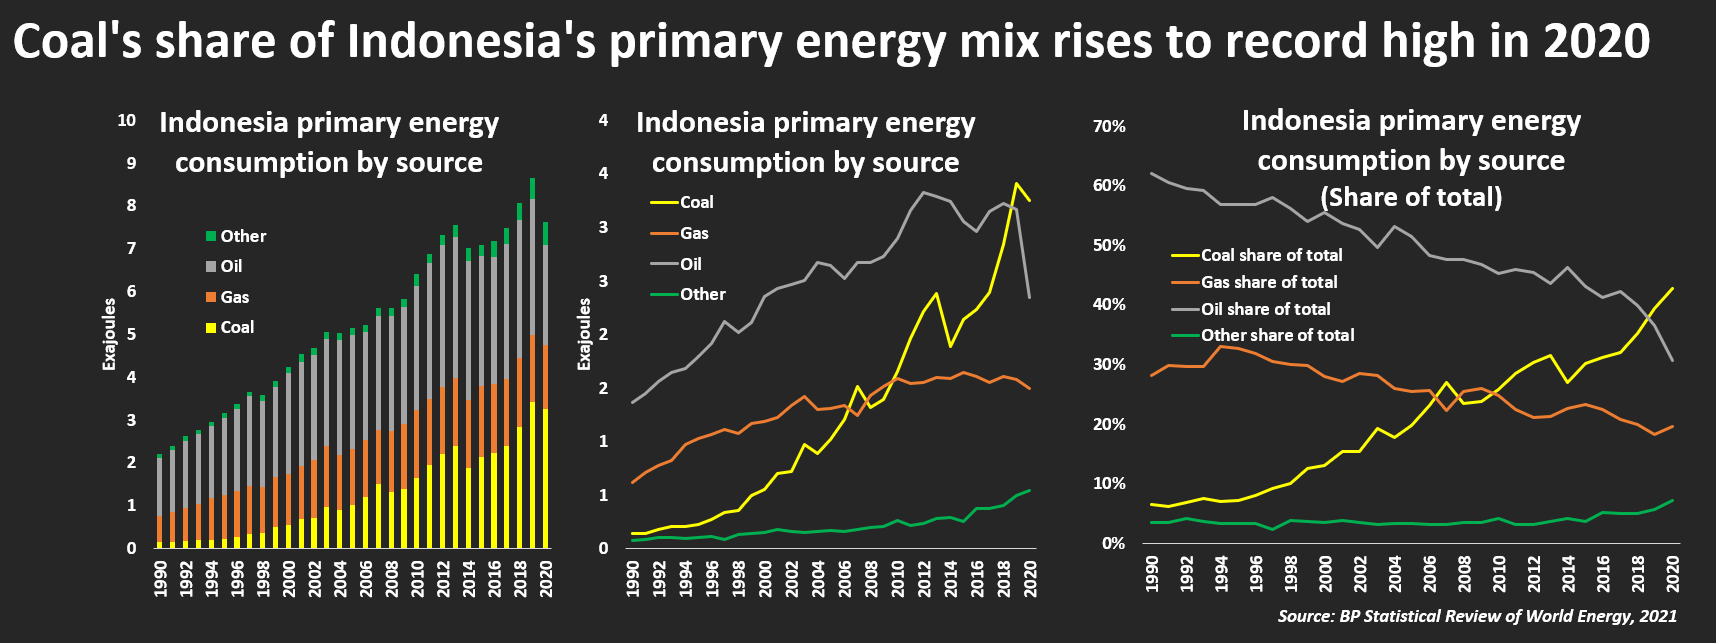 Coal's share of Indonesia's primary energy mix